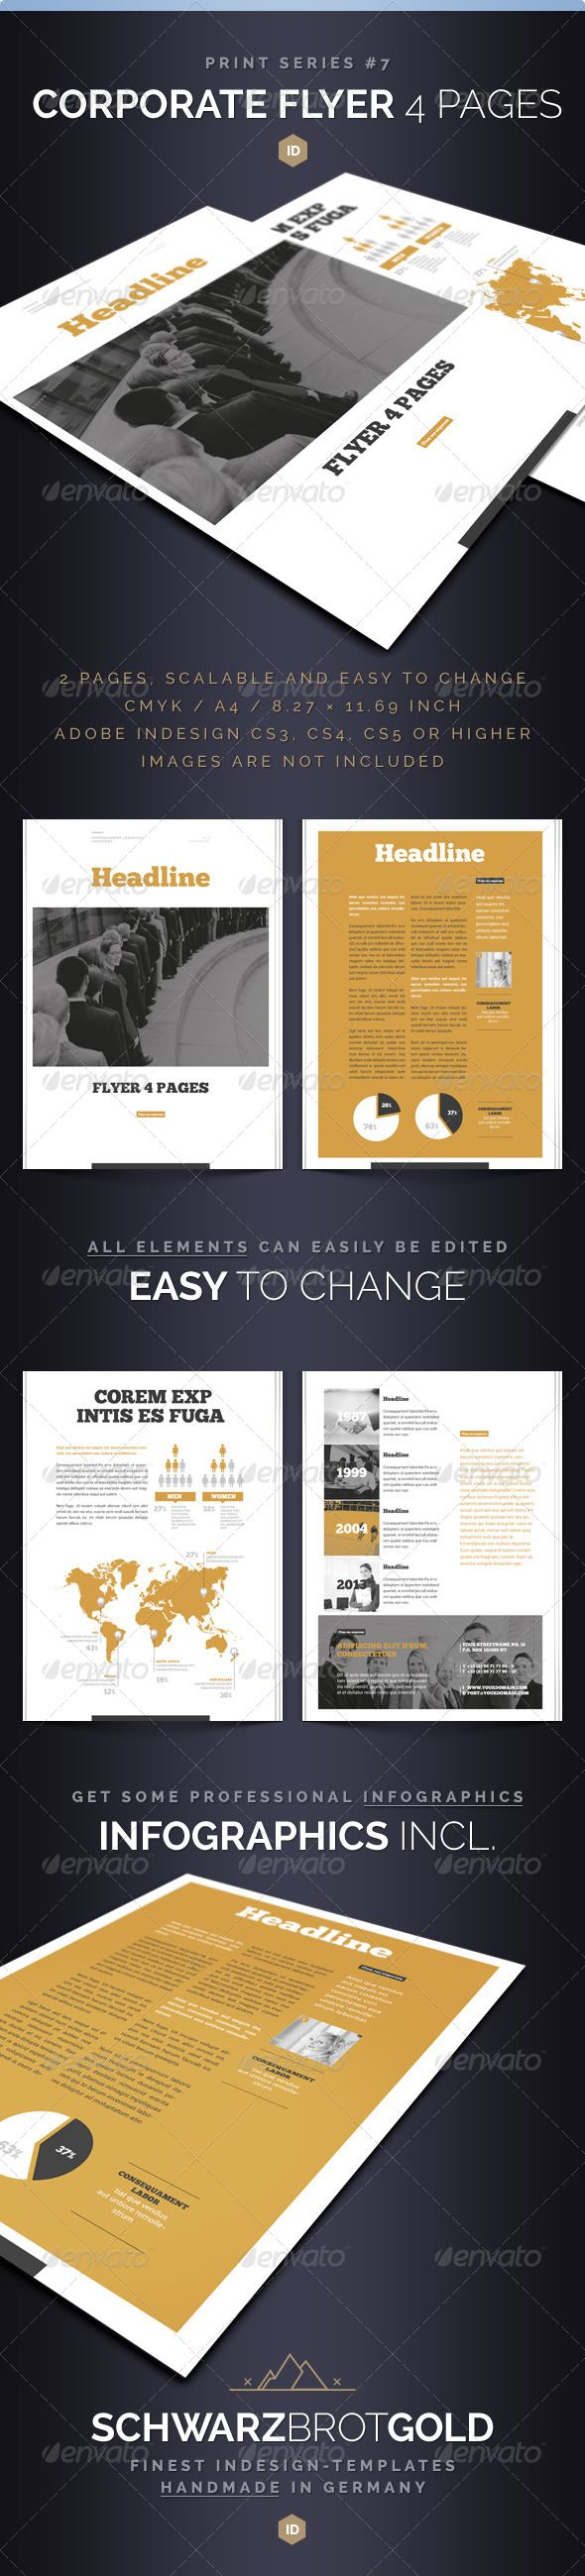 Corporate Flyer 4 Pages Series 7